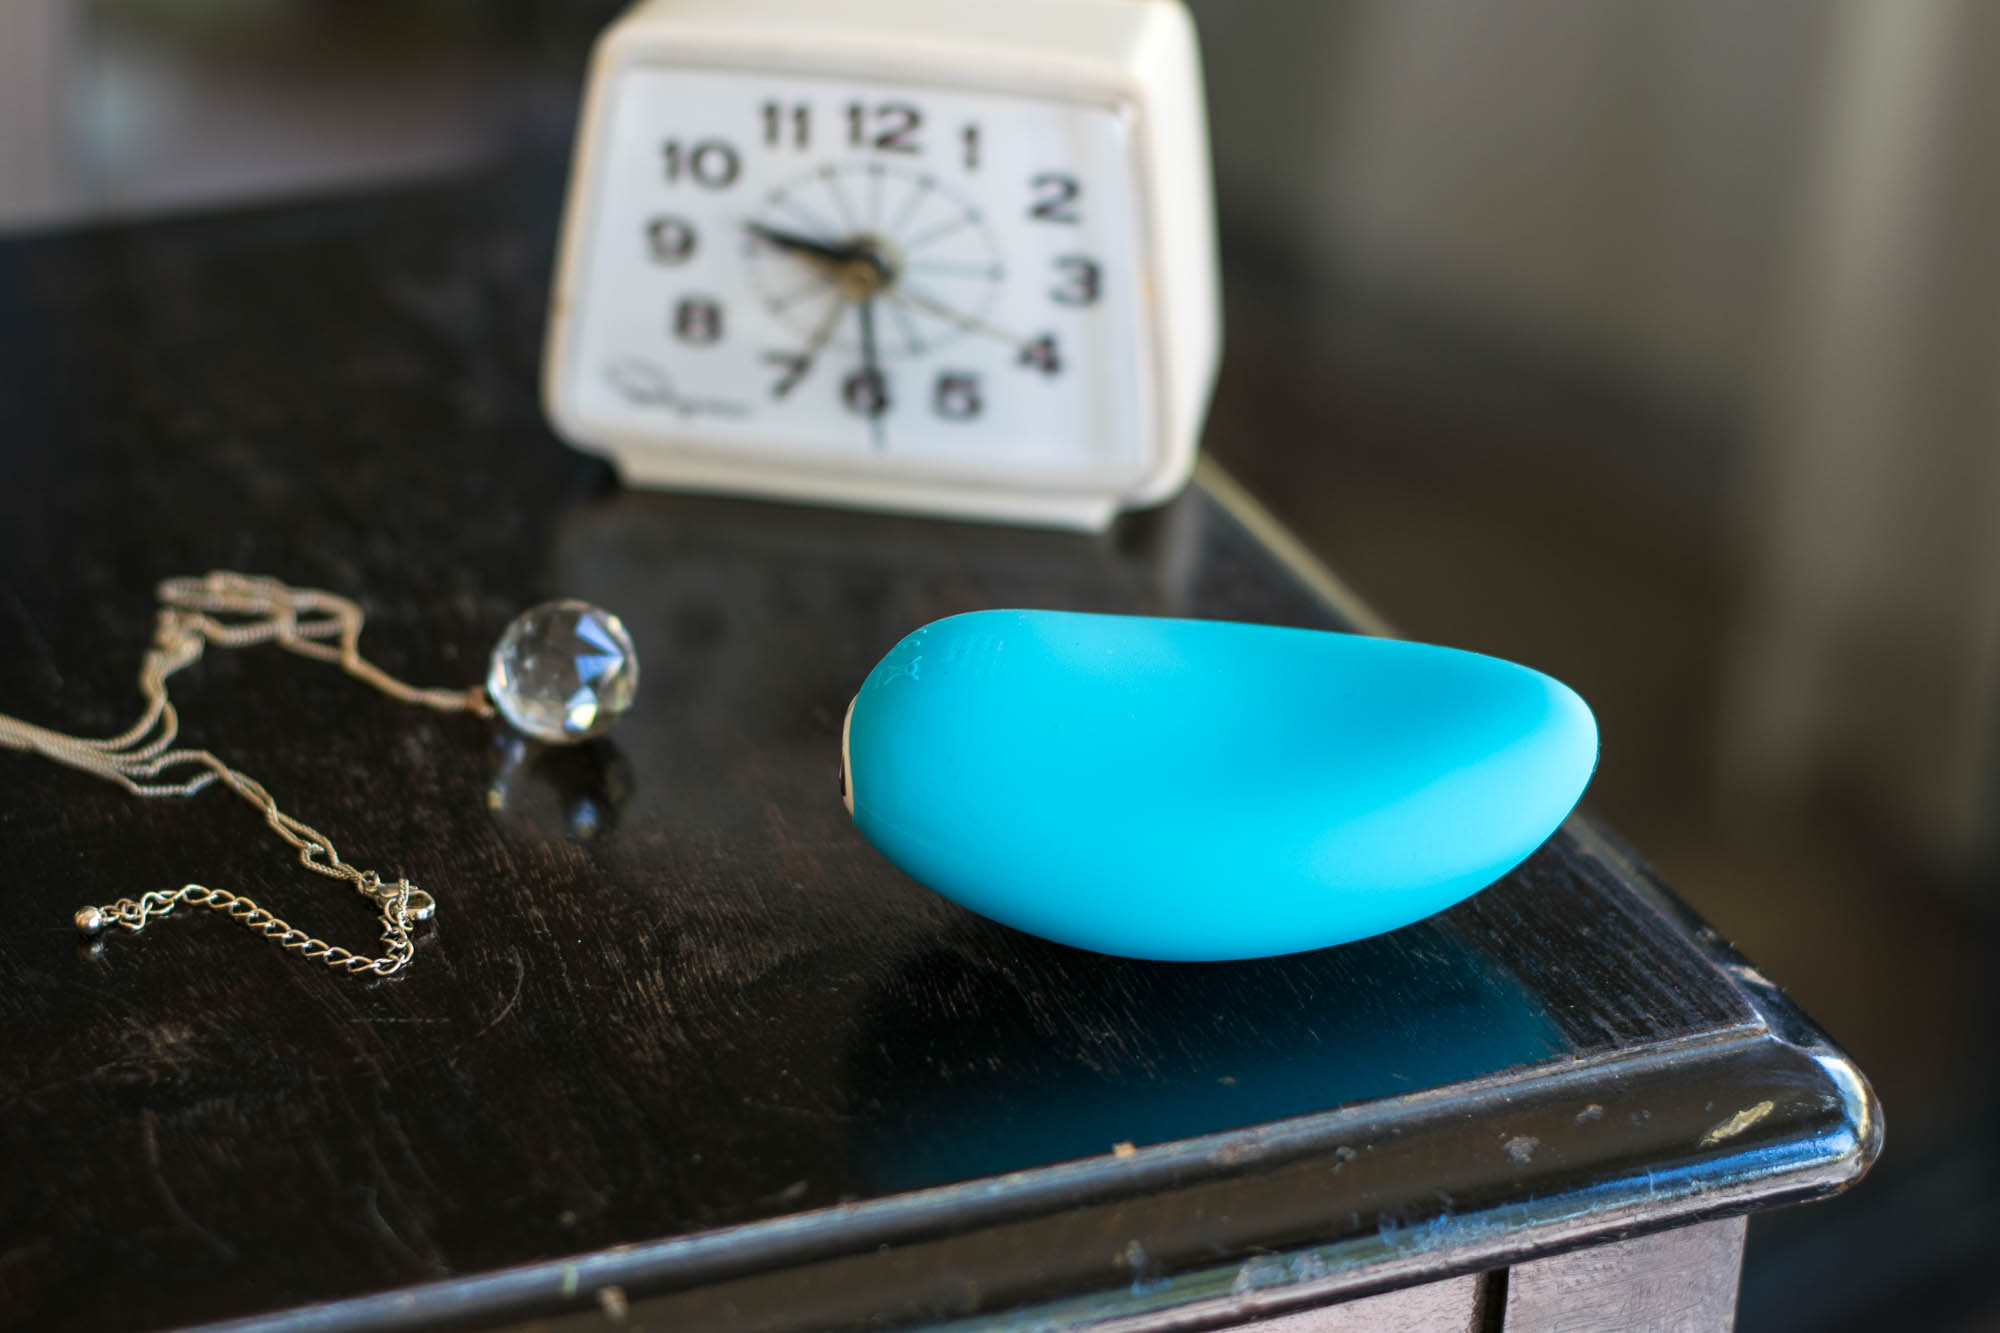 We-Vibe Wish rechargeable clitoral vibrator lying on a clear glass sculpture.